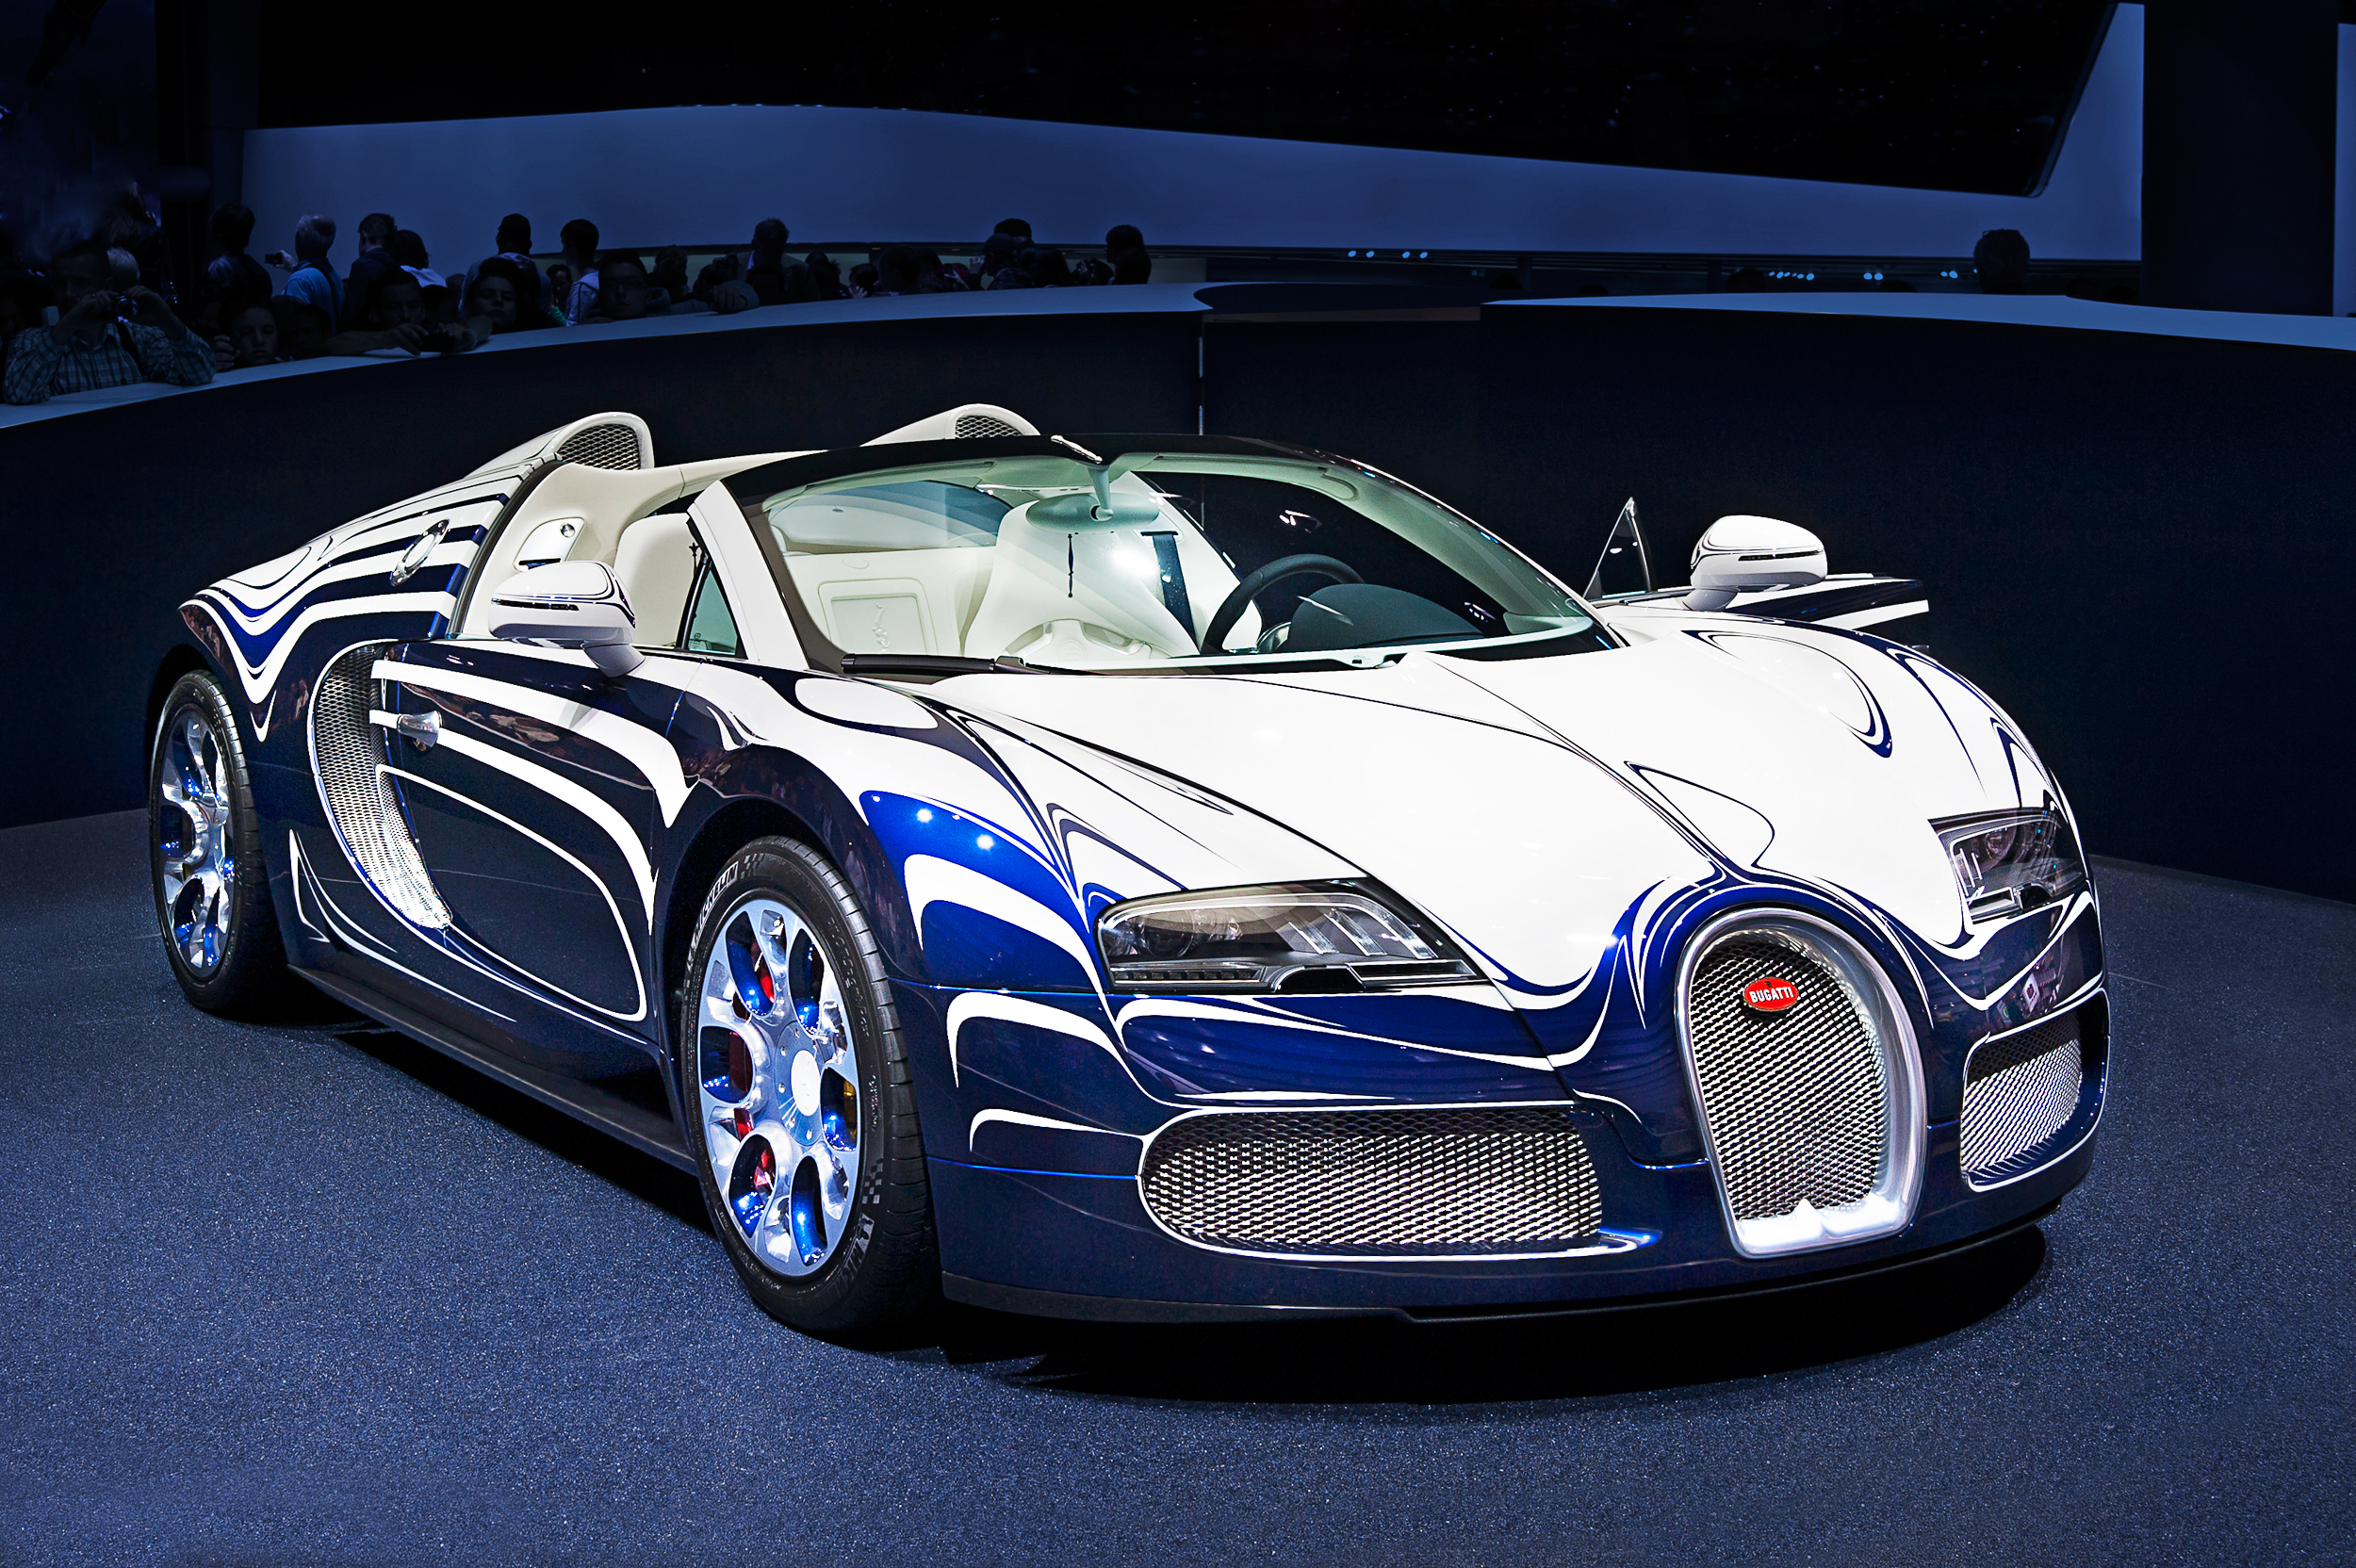 file bugatti veyron iaa wikimedia commons. Black Bedroom Furniture Sets. Home Design Ideas